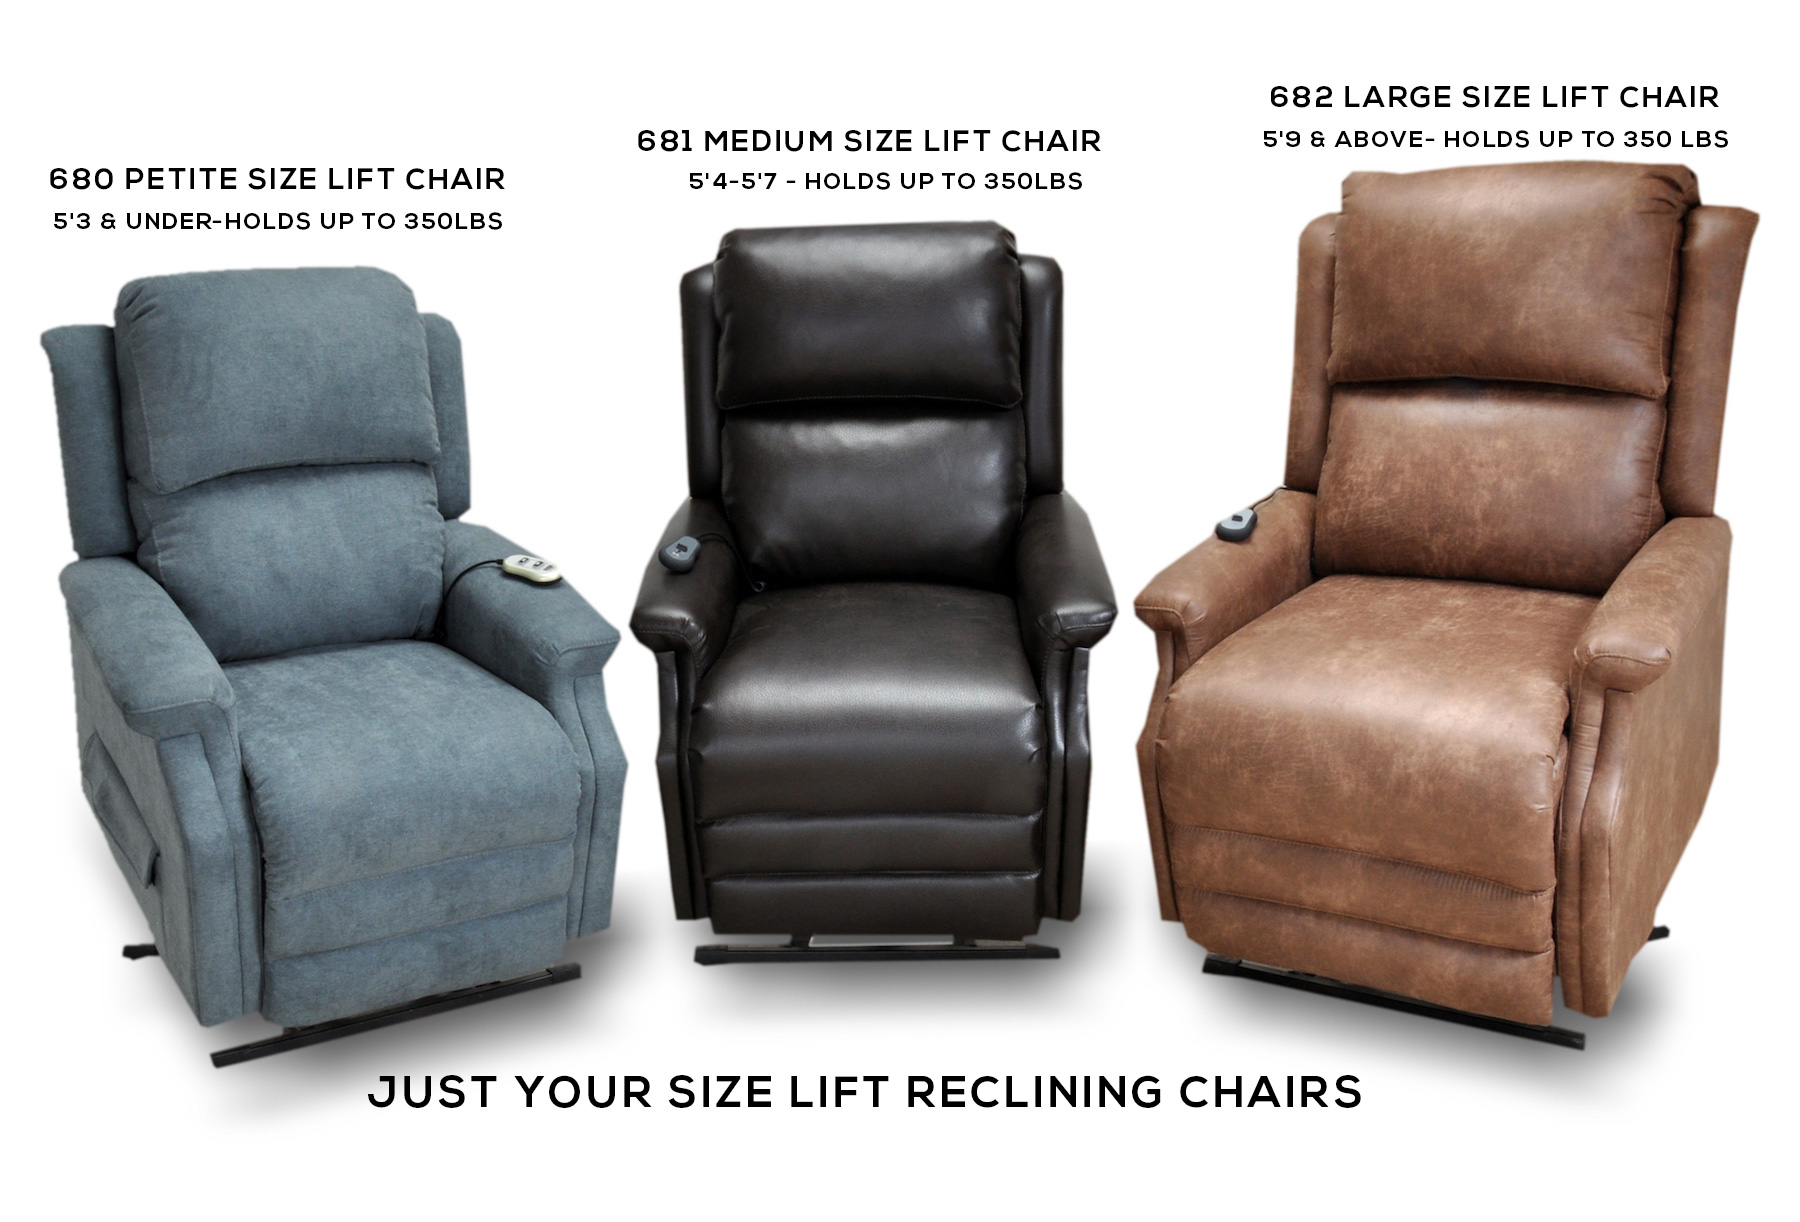 Arthur 680 Petite Size Lift Reclining Chair  sc 1 st  Sofas and Sectionals & Arthur 680 Petite Size Lift Reclining Chair | Sofas and Sectionals islam-shia.org